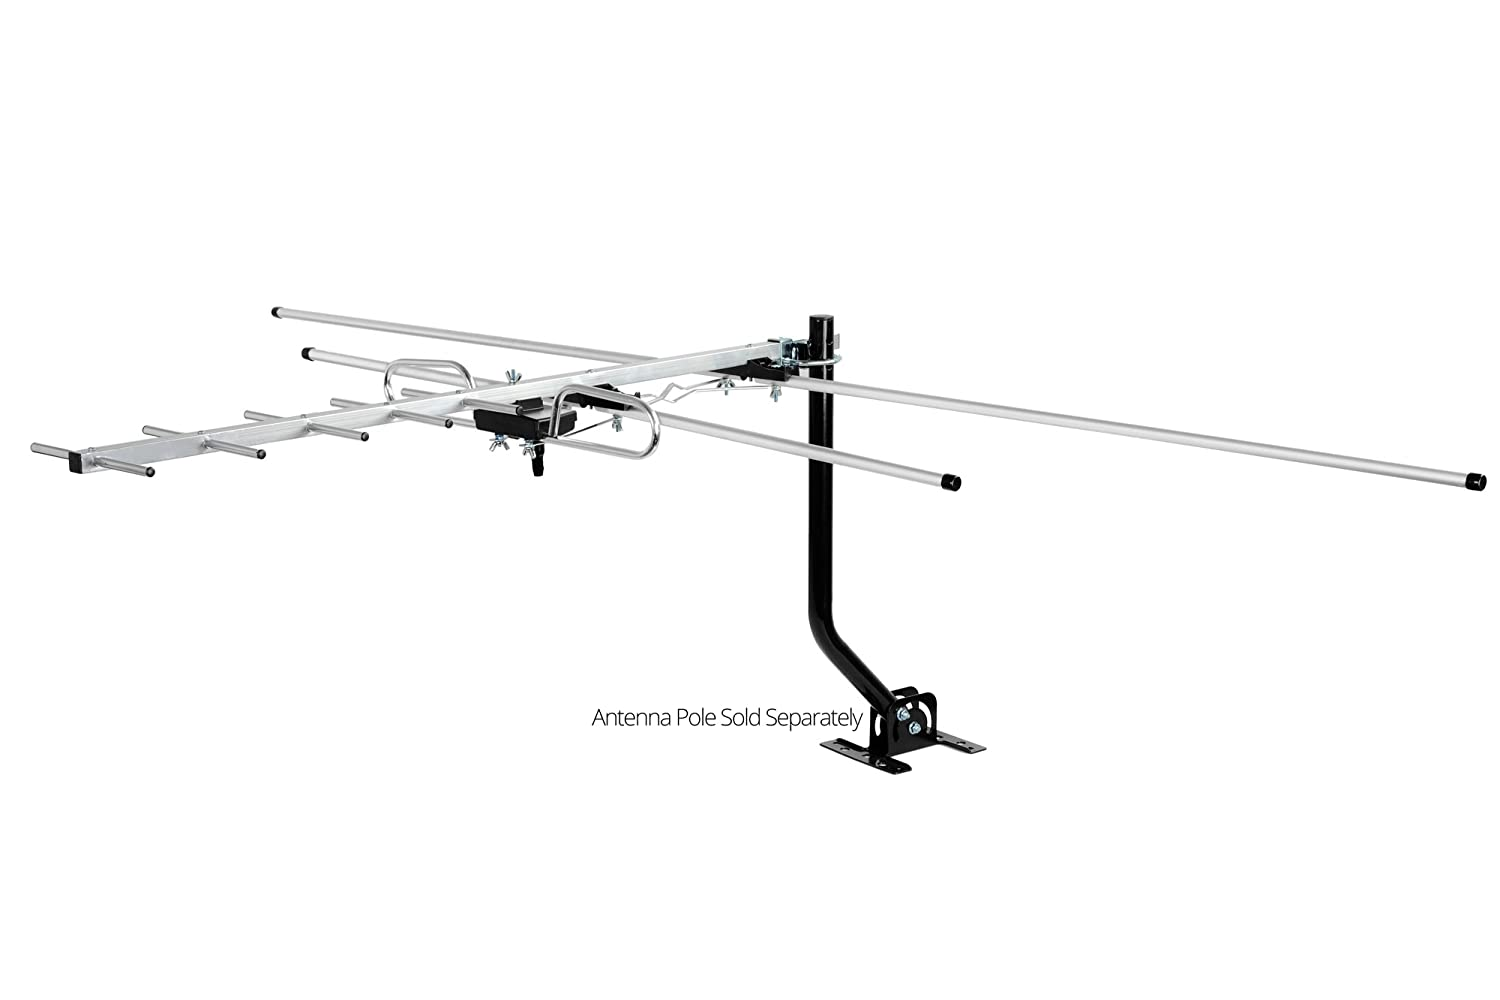 ViewTV DA-290 Indoor/Outdoor Compact Yagi HDTV Antenna for Roof or Attic - 80 Miles Range 4330082223